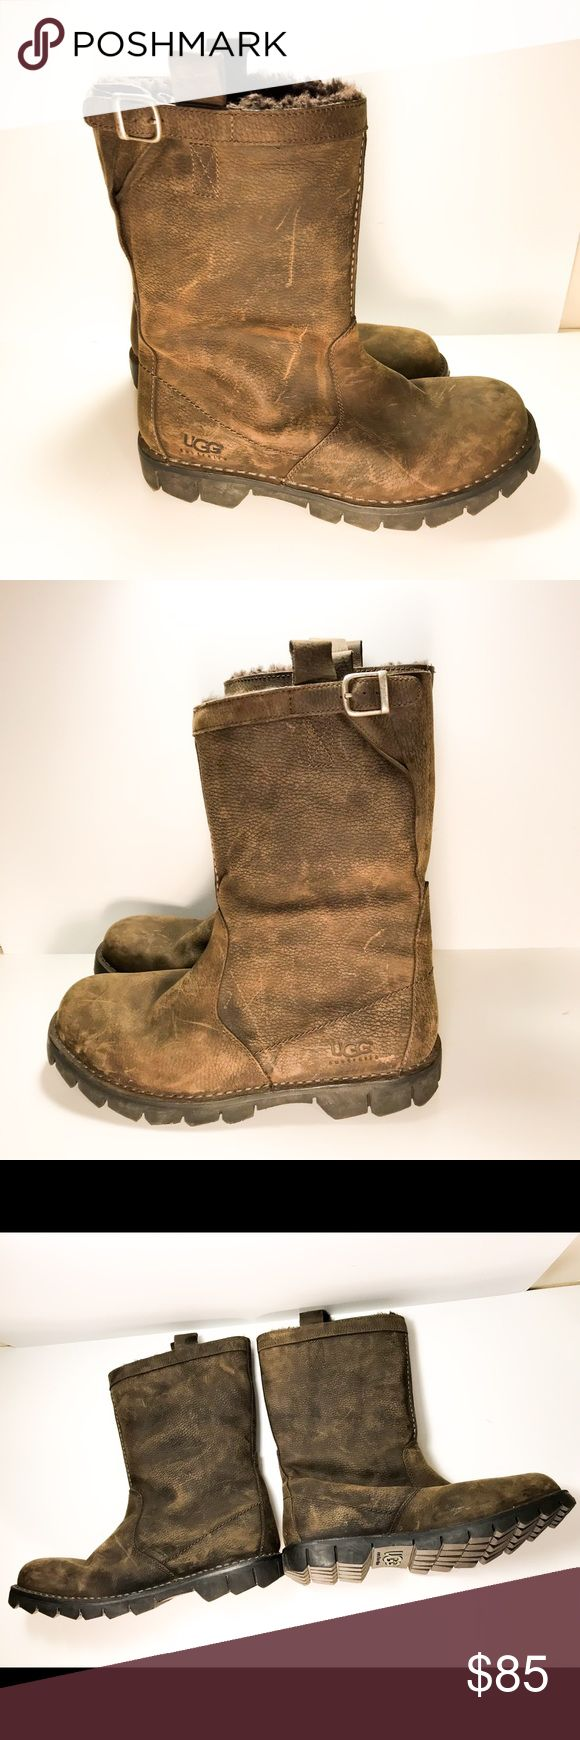 🎉Just In🎊 Men's UGG® Australia Berrien Boots In good condition some marking on the leather from storage please see pictures for marks on uppers as they aged. Worn only once.   - Uppers are full grain leather, lined with sheepskin.   - Outsole utilizes floating rubber technology.   - Insoles are made of genuine sheepskin. Sheepskin insoles naturally wick away moisture from your feet and help keep them dry.   - If you're between sizes, half size up  - 🚭 Smoke Free Home UGG Shoes Boots